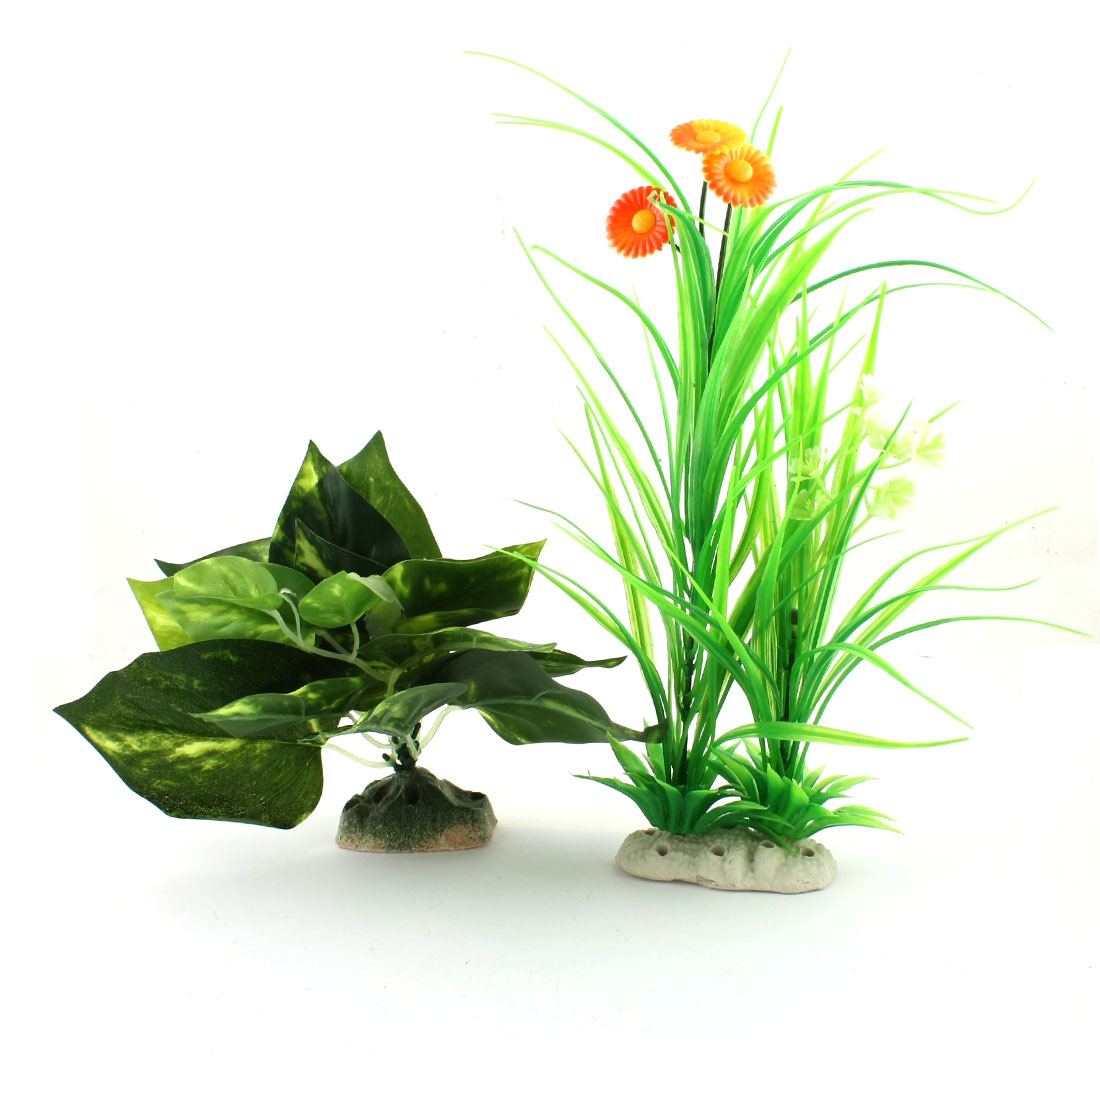 2 Pcs Aquarium Decor Ceramic Base Orange Flower Green Plastic Water Grass